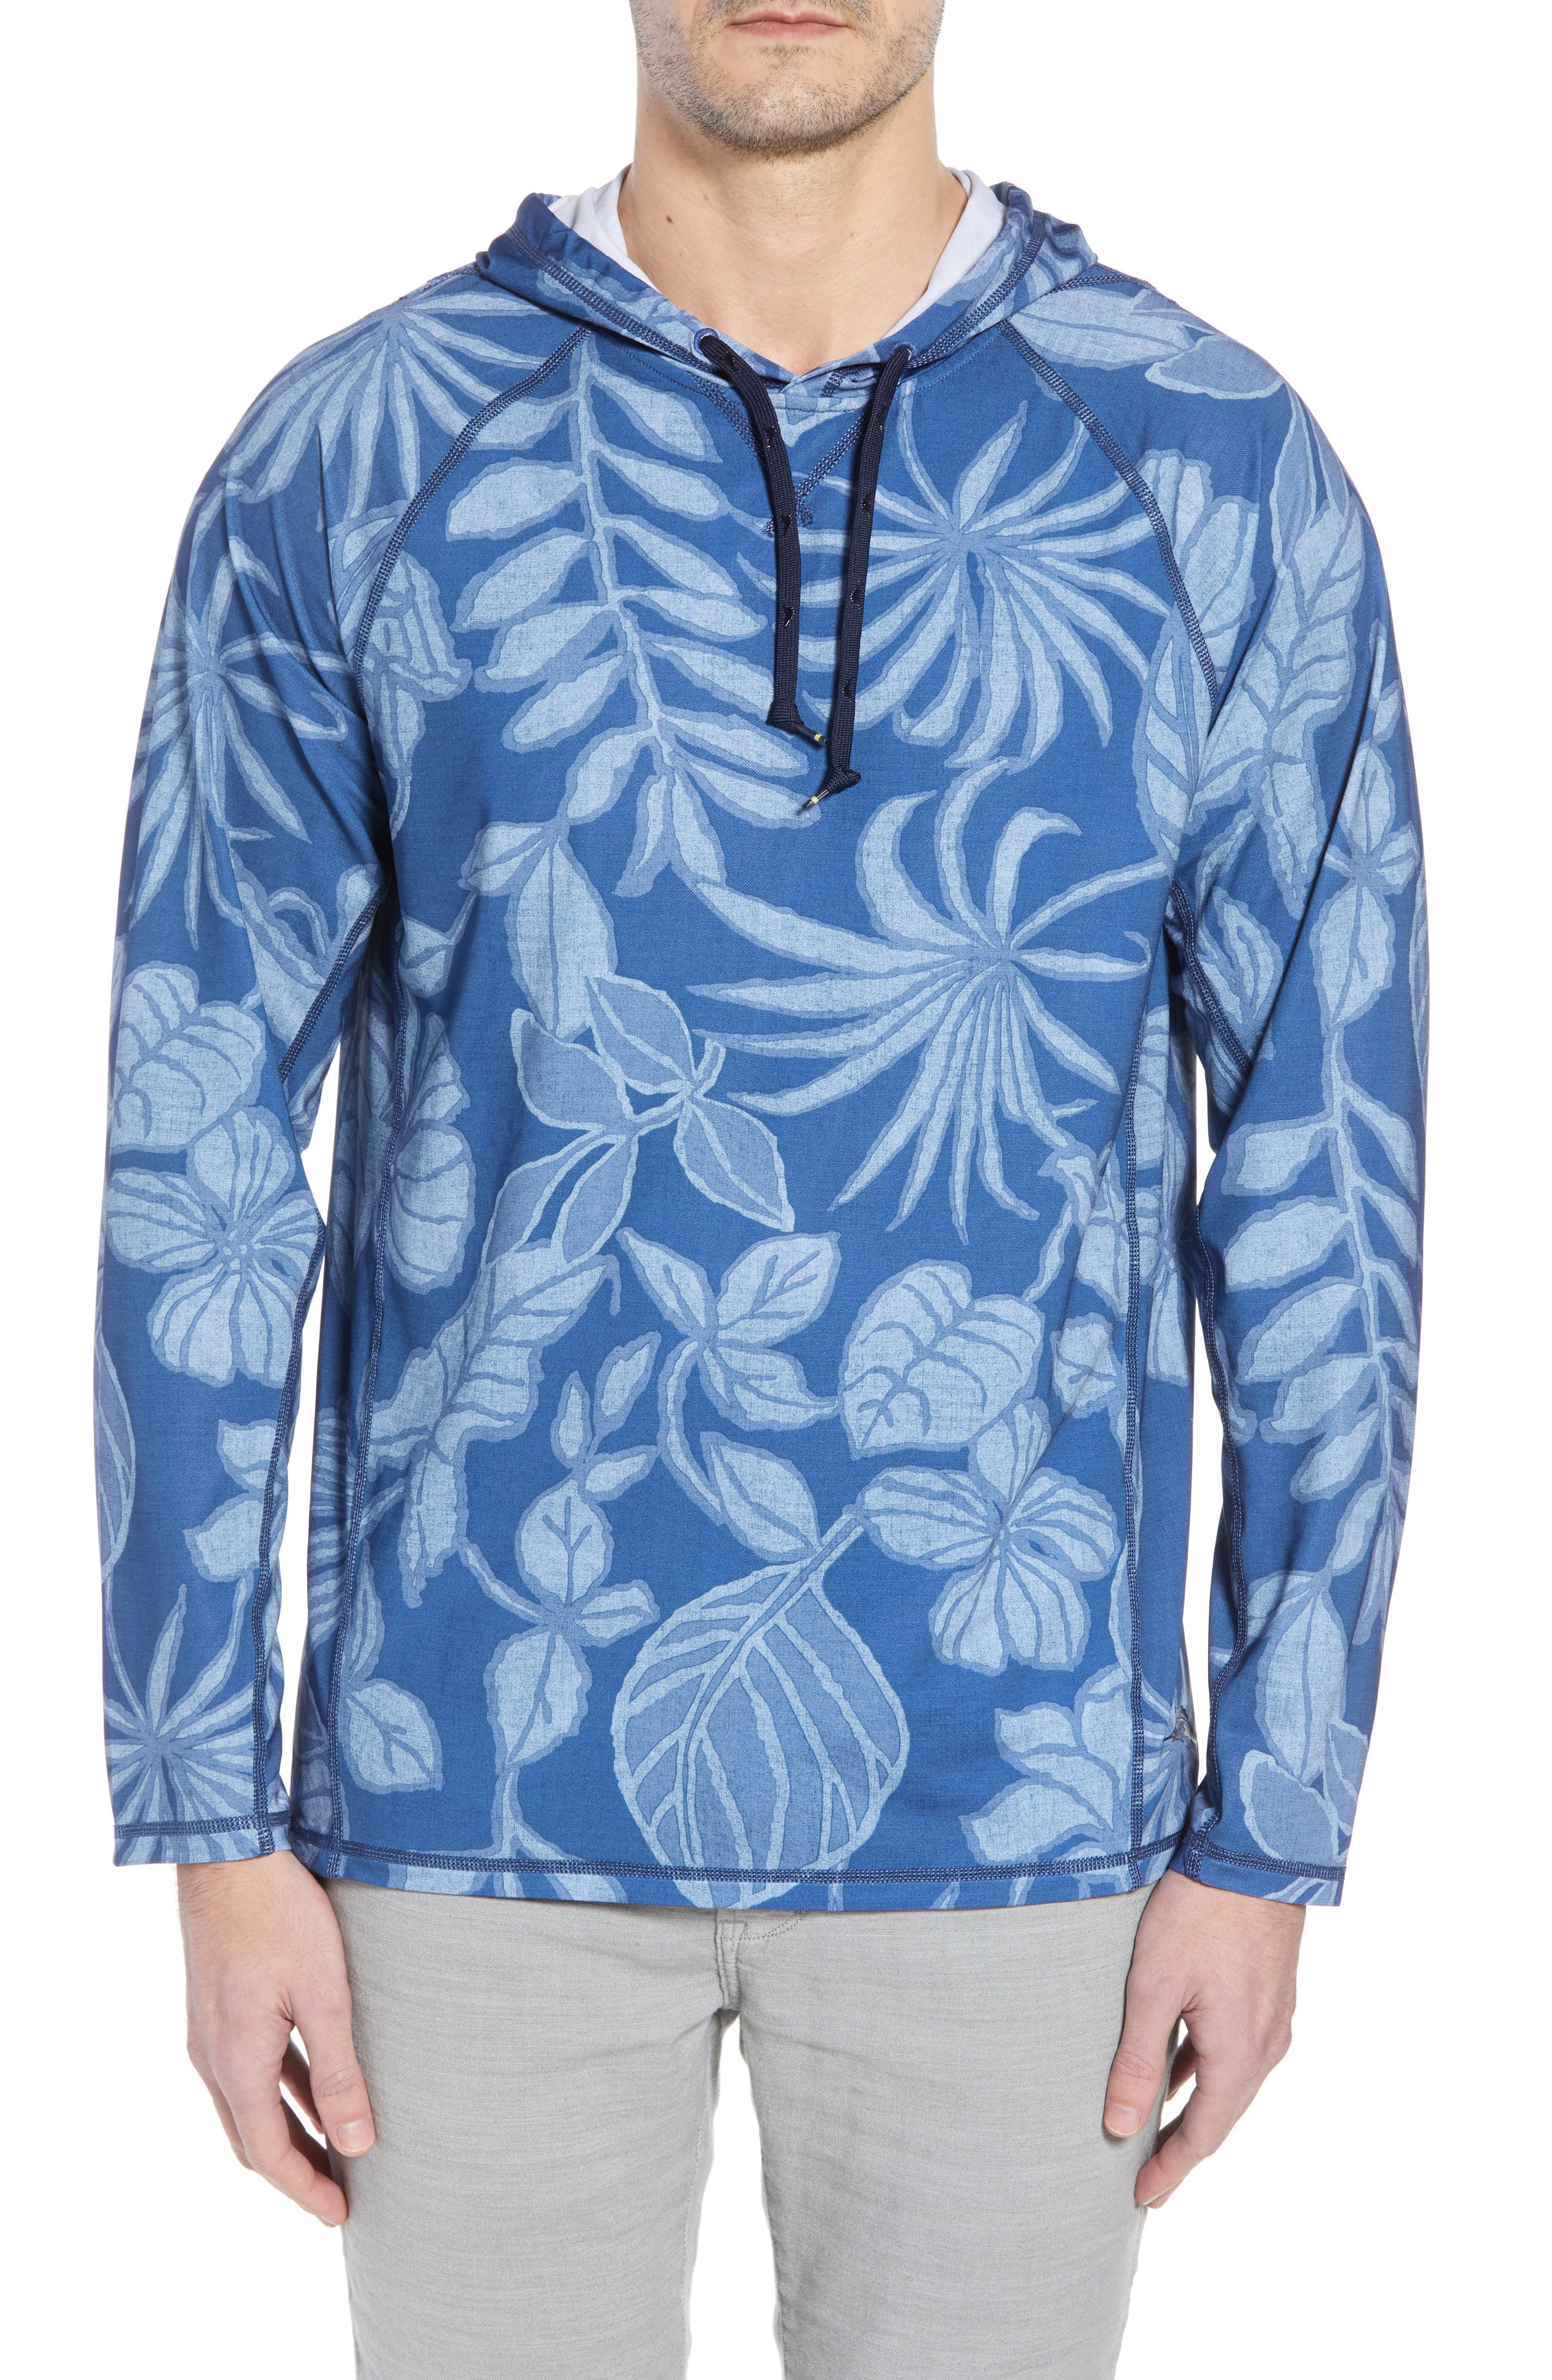 Playa Mambo Tech Hoodie,                             Main thumbnail 1, color,                             ATLANTIC